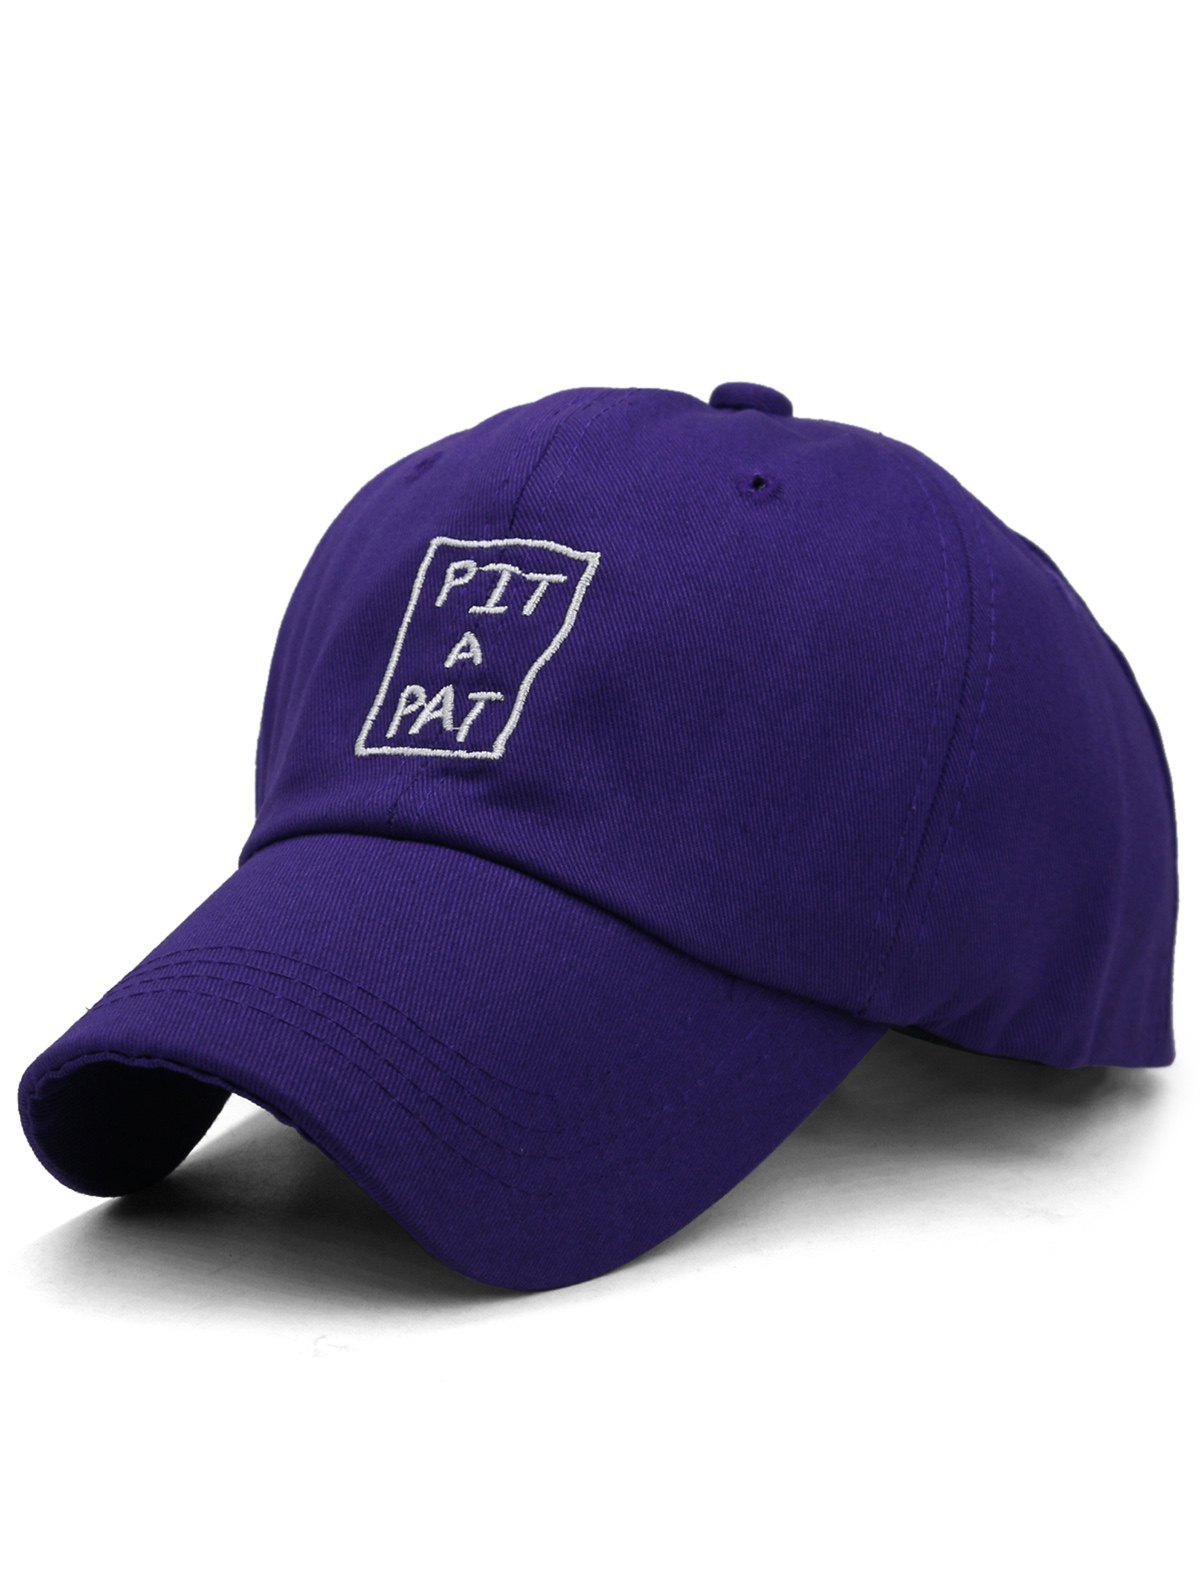 Online PIT A PAT Embroidery Adjustable Graphic Hat